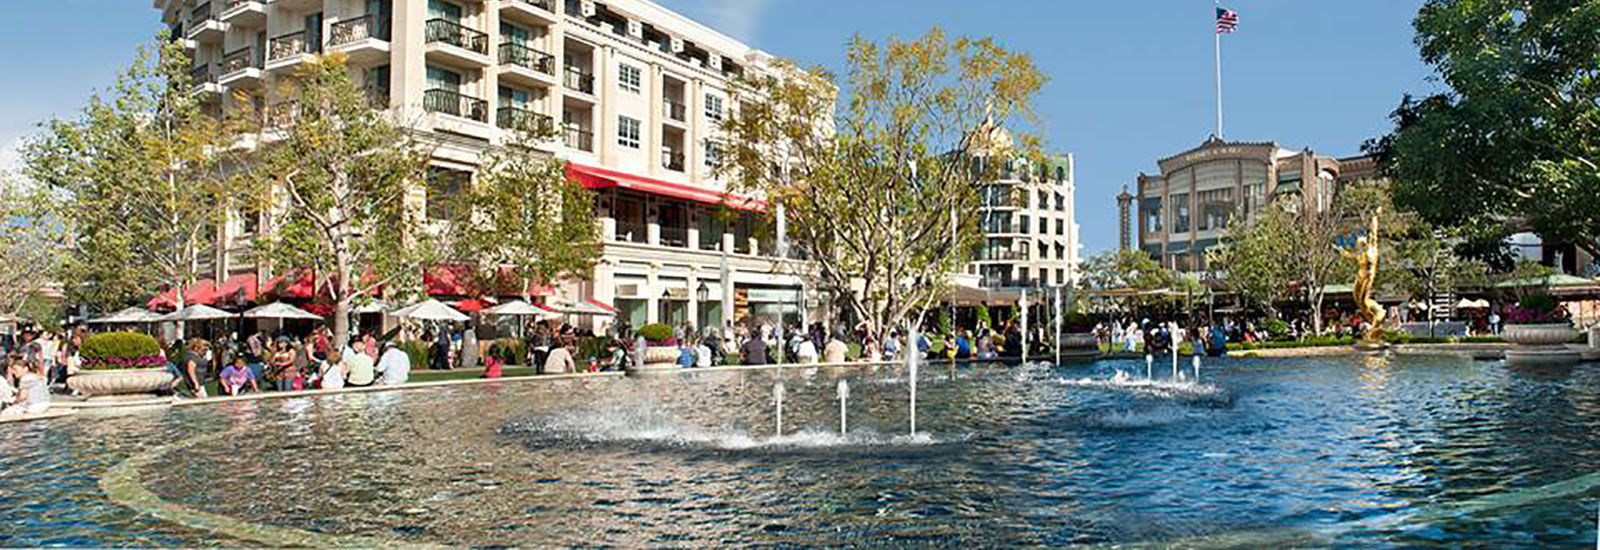 Americana At Brand >> The Americana At Brand Directory Downtown Glendale